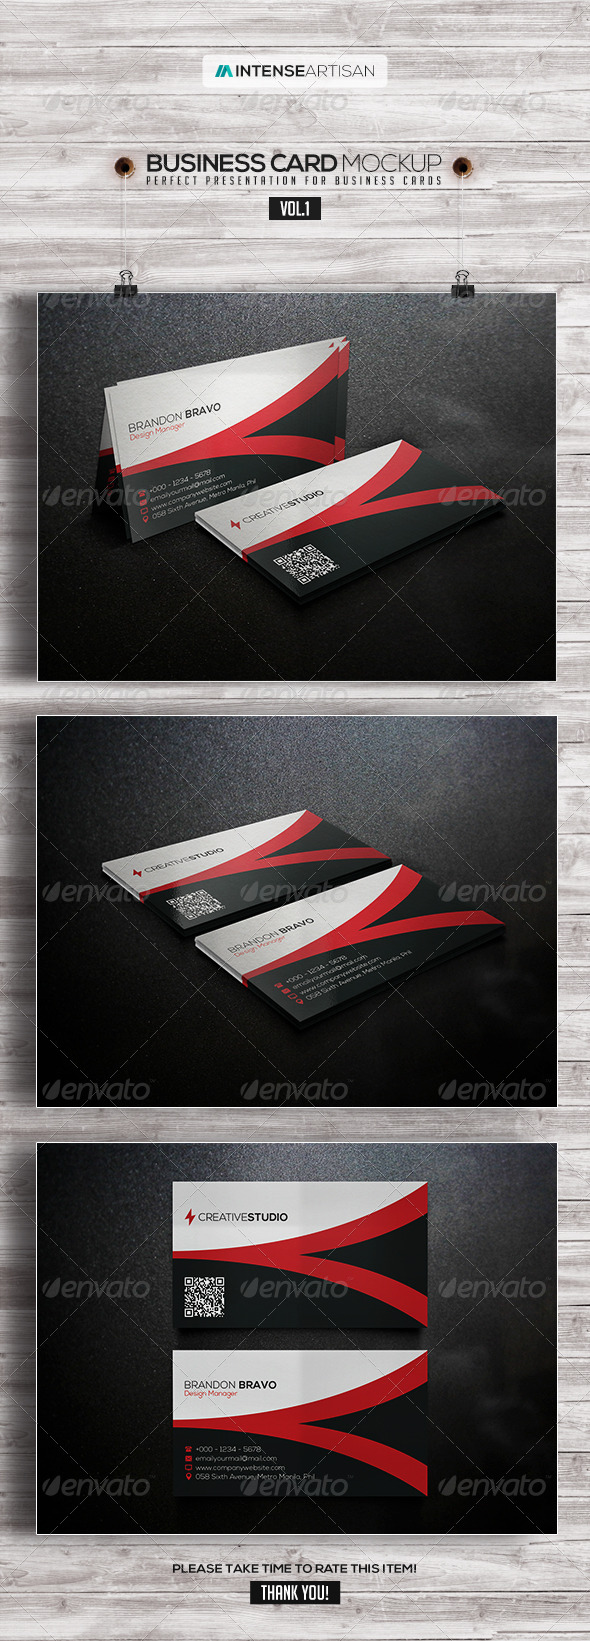 Business Card Mockup V.1 - Business Cards Print